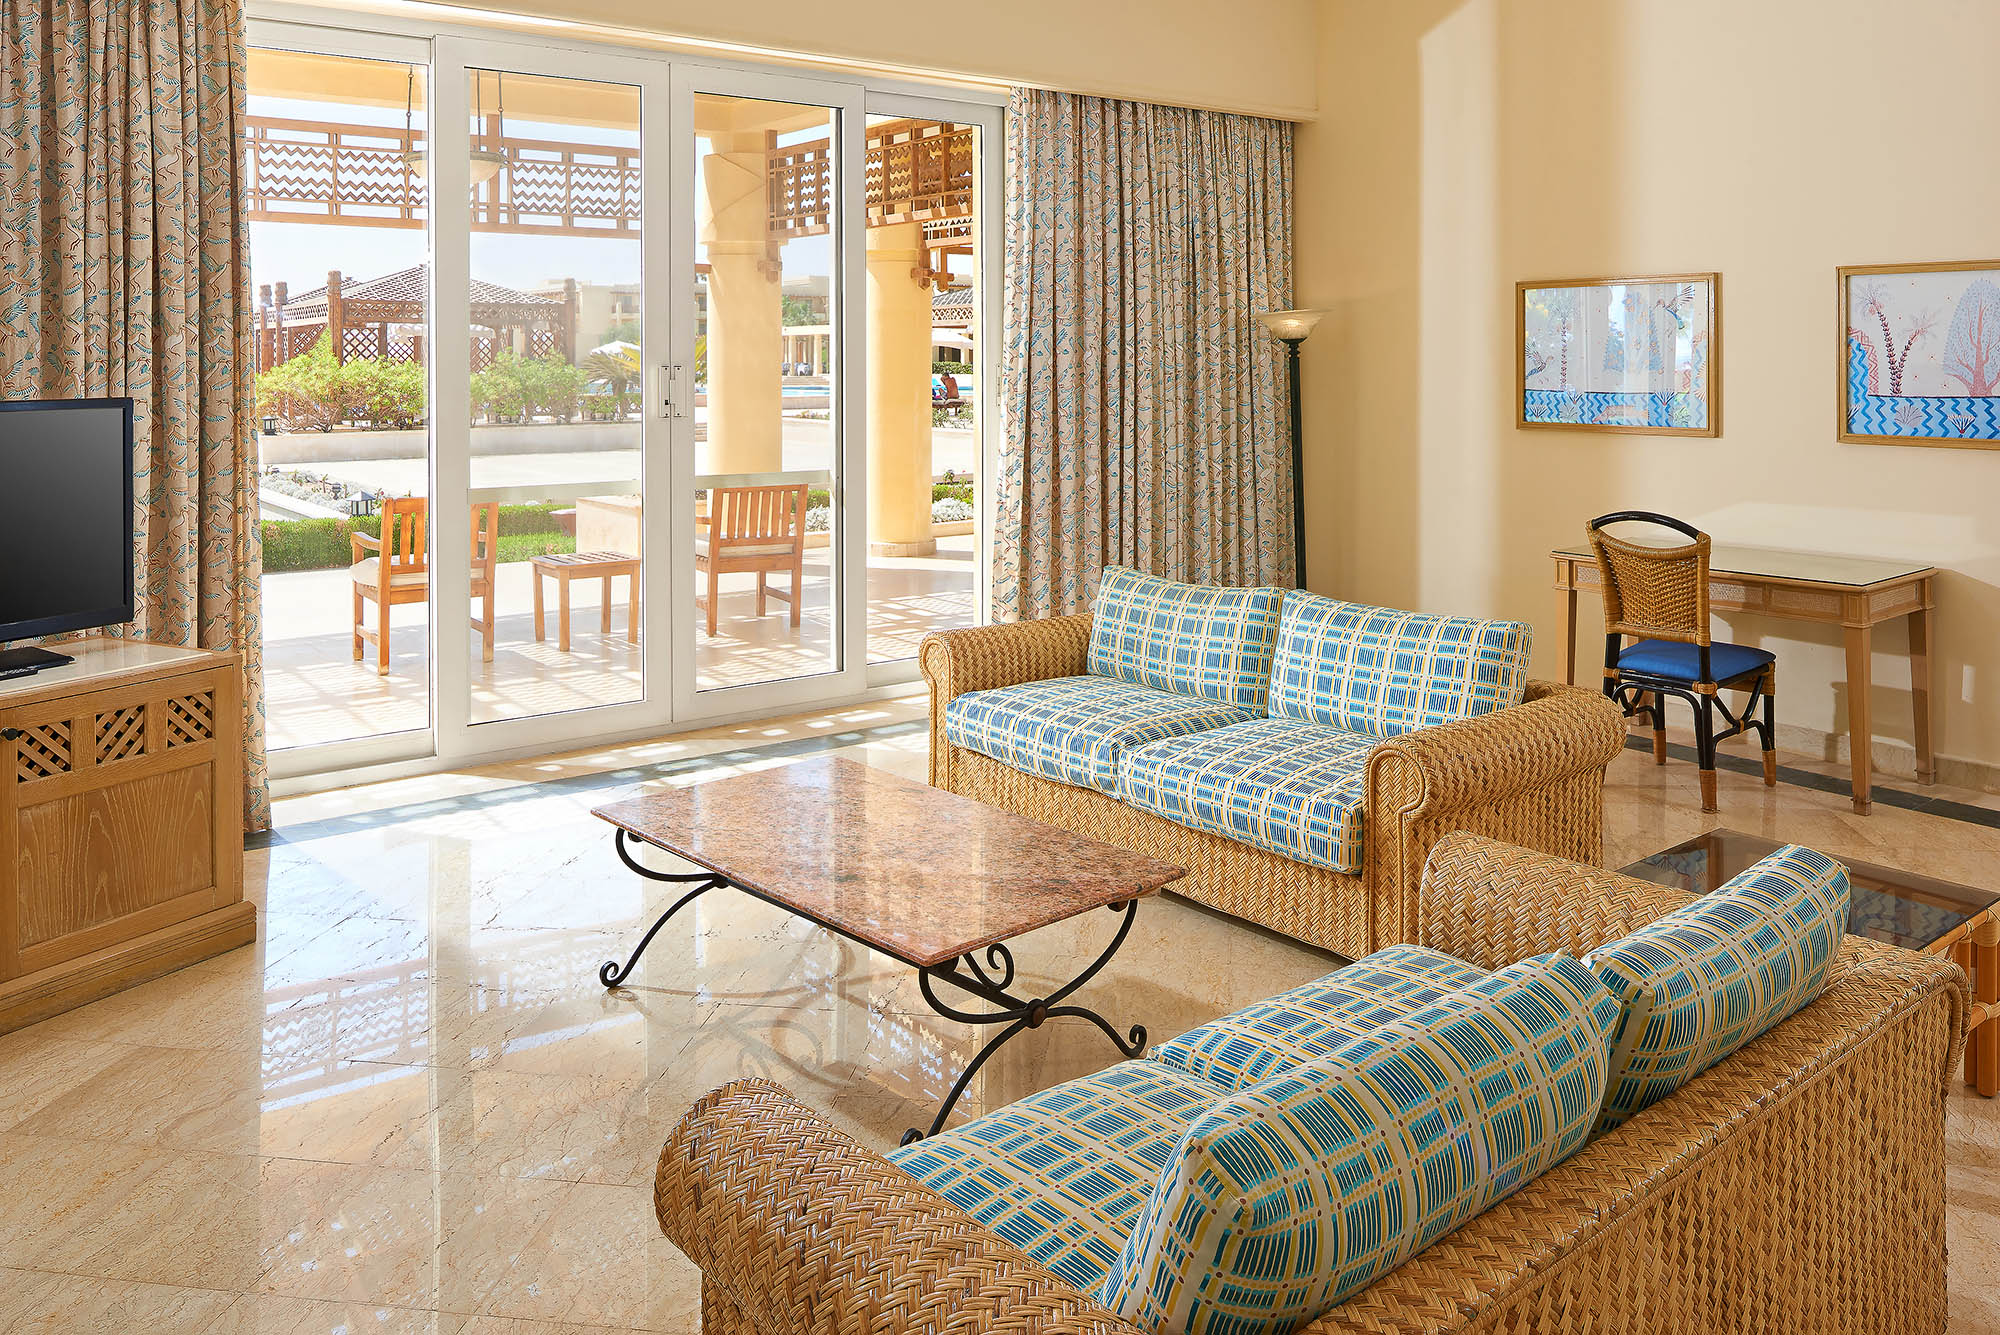 Hospitality photography Egypt - Sheraton Soma Bay - Royal Suite living room